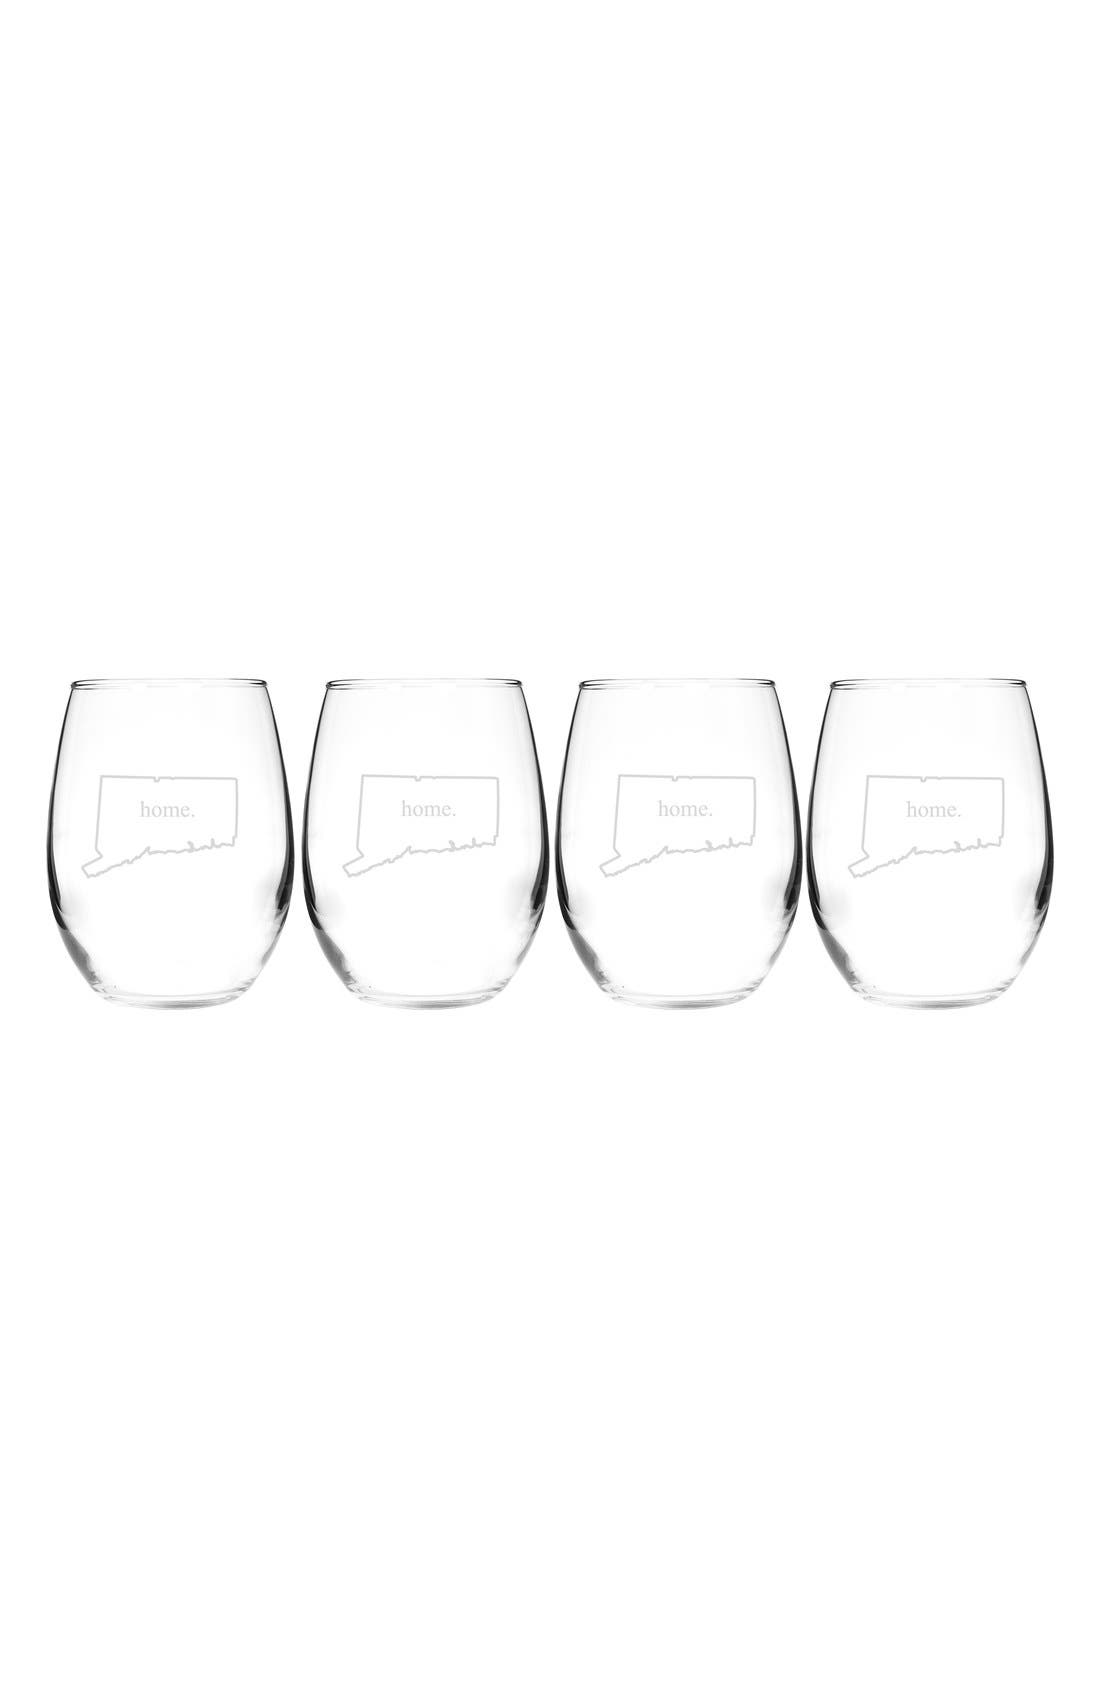 Home State Set of 4 Stemless Wine Glasses,                             Main thumbnail 8, color,